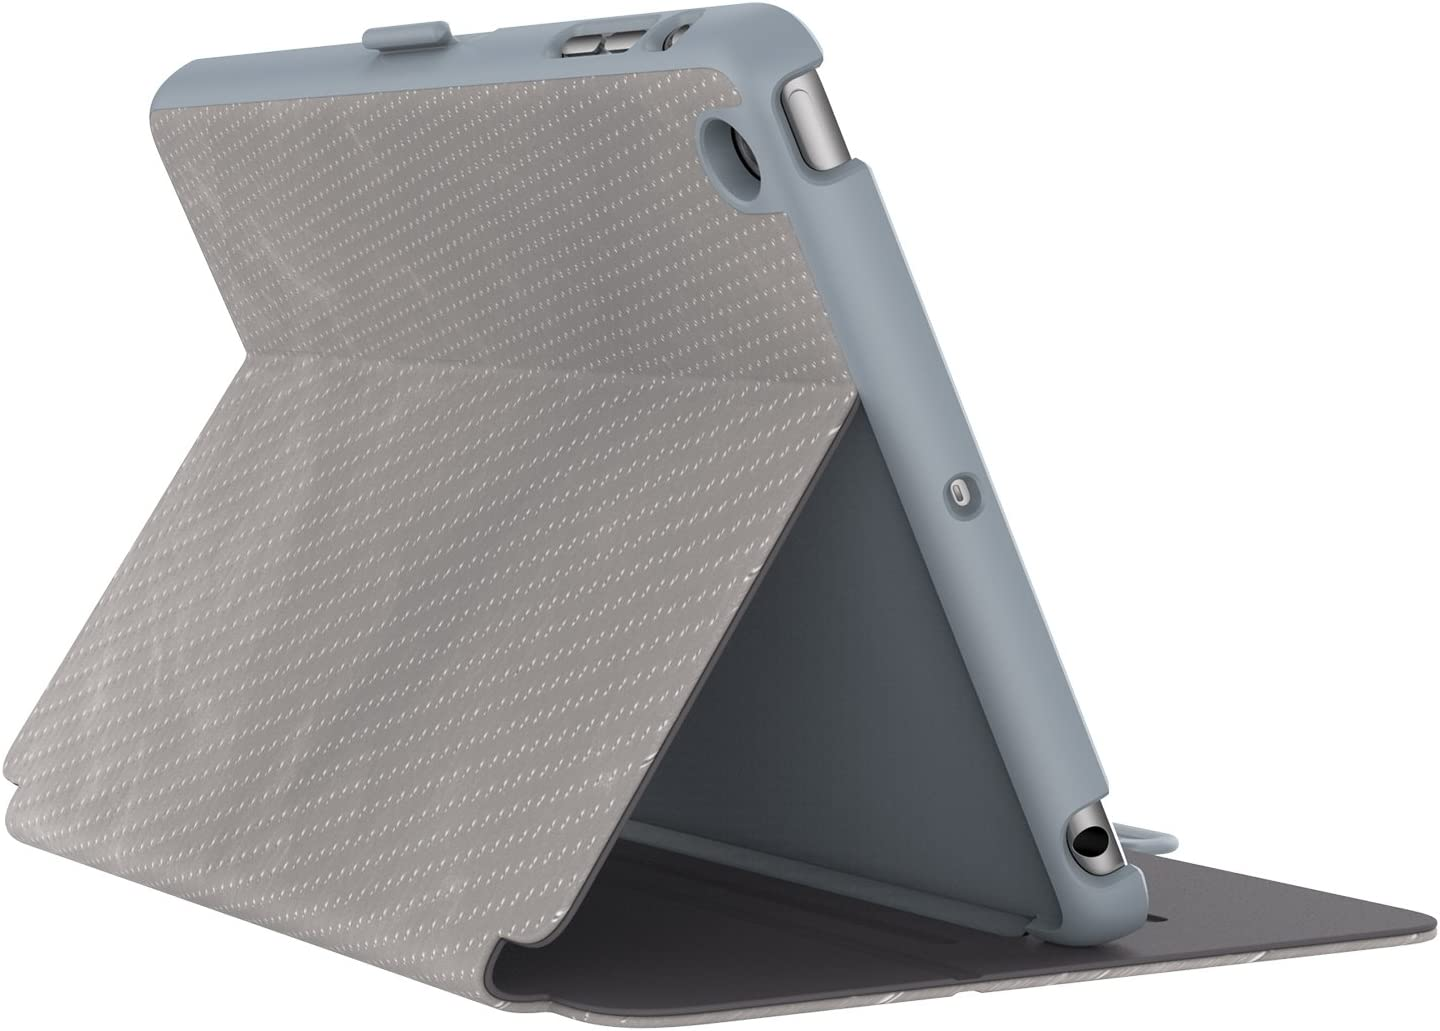 Speck Products StyleFolio Luxe Case and Stand for iPad Mini 4, Textured Metallic Perf Titanium/Nickel/Soot Grey (73958-C241)